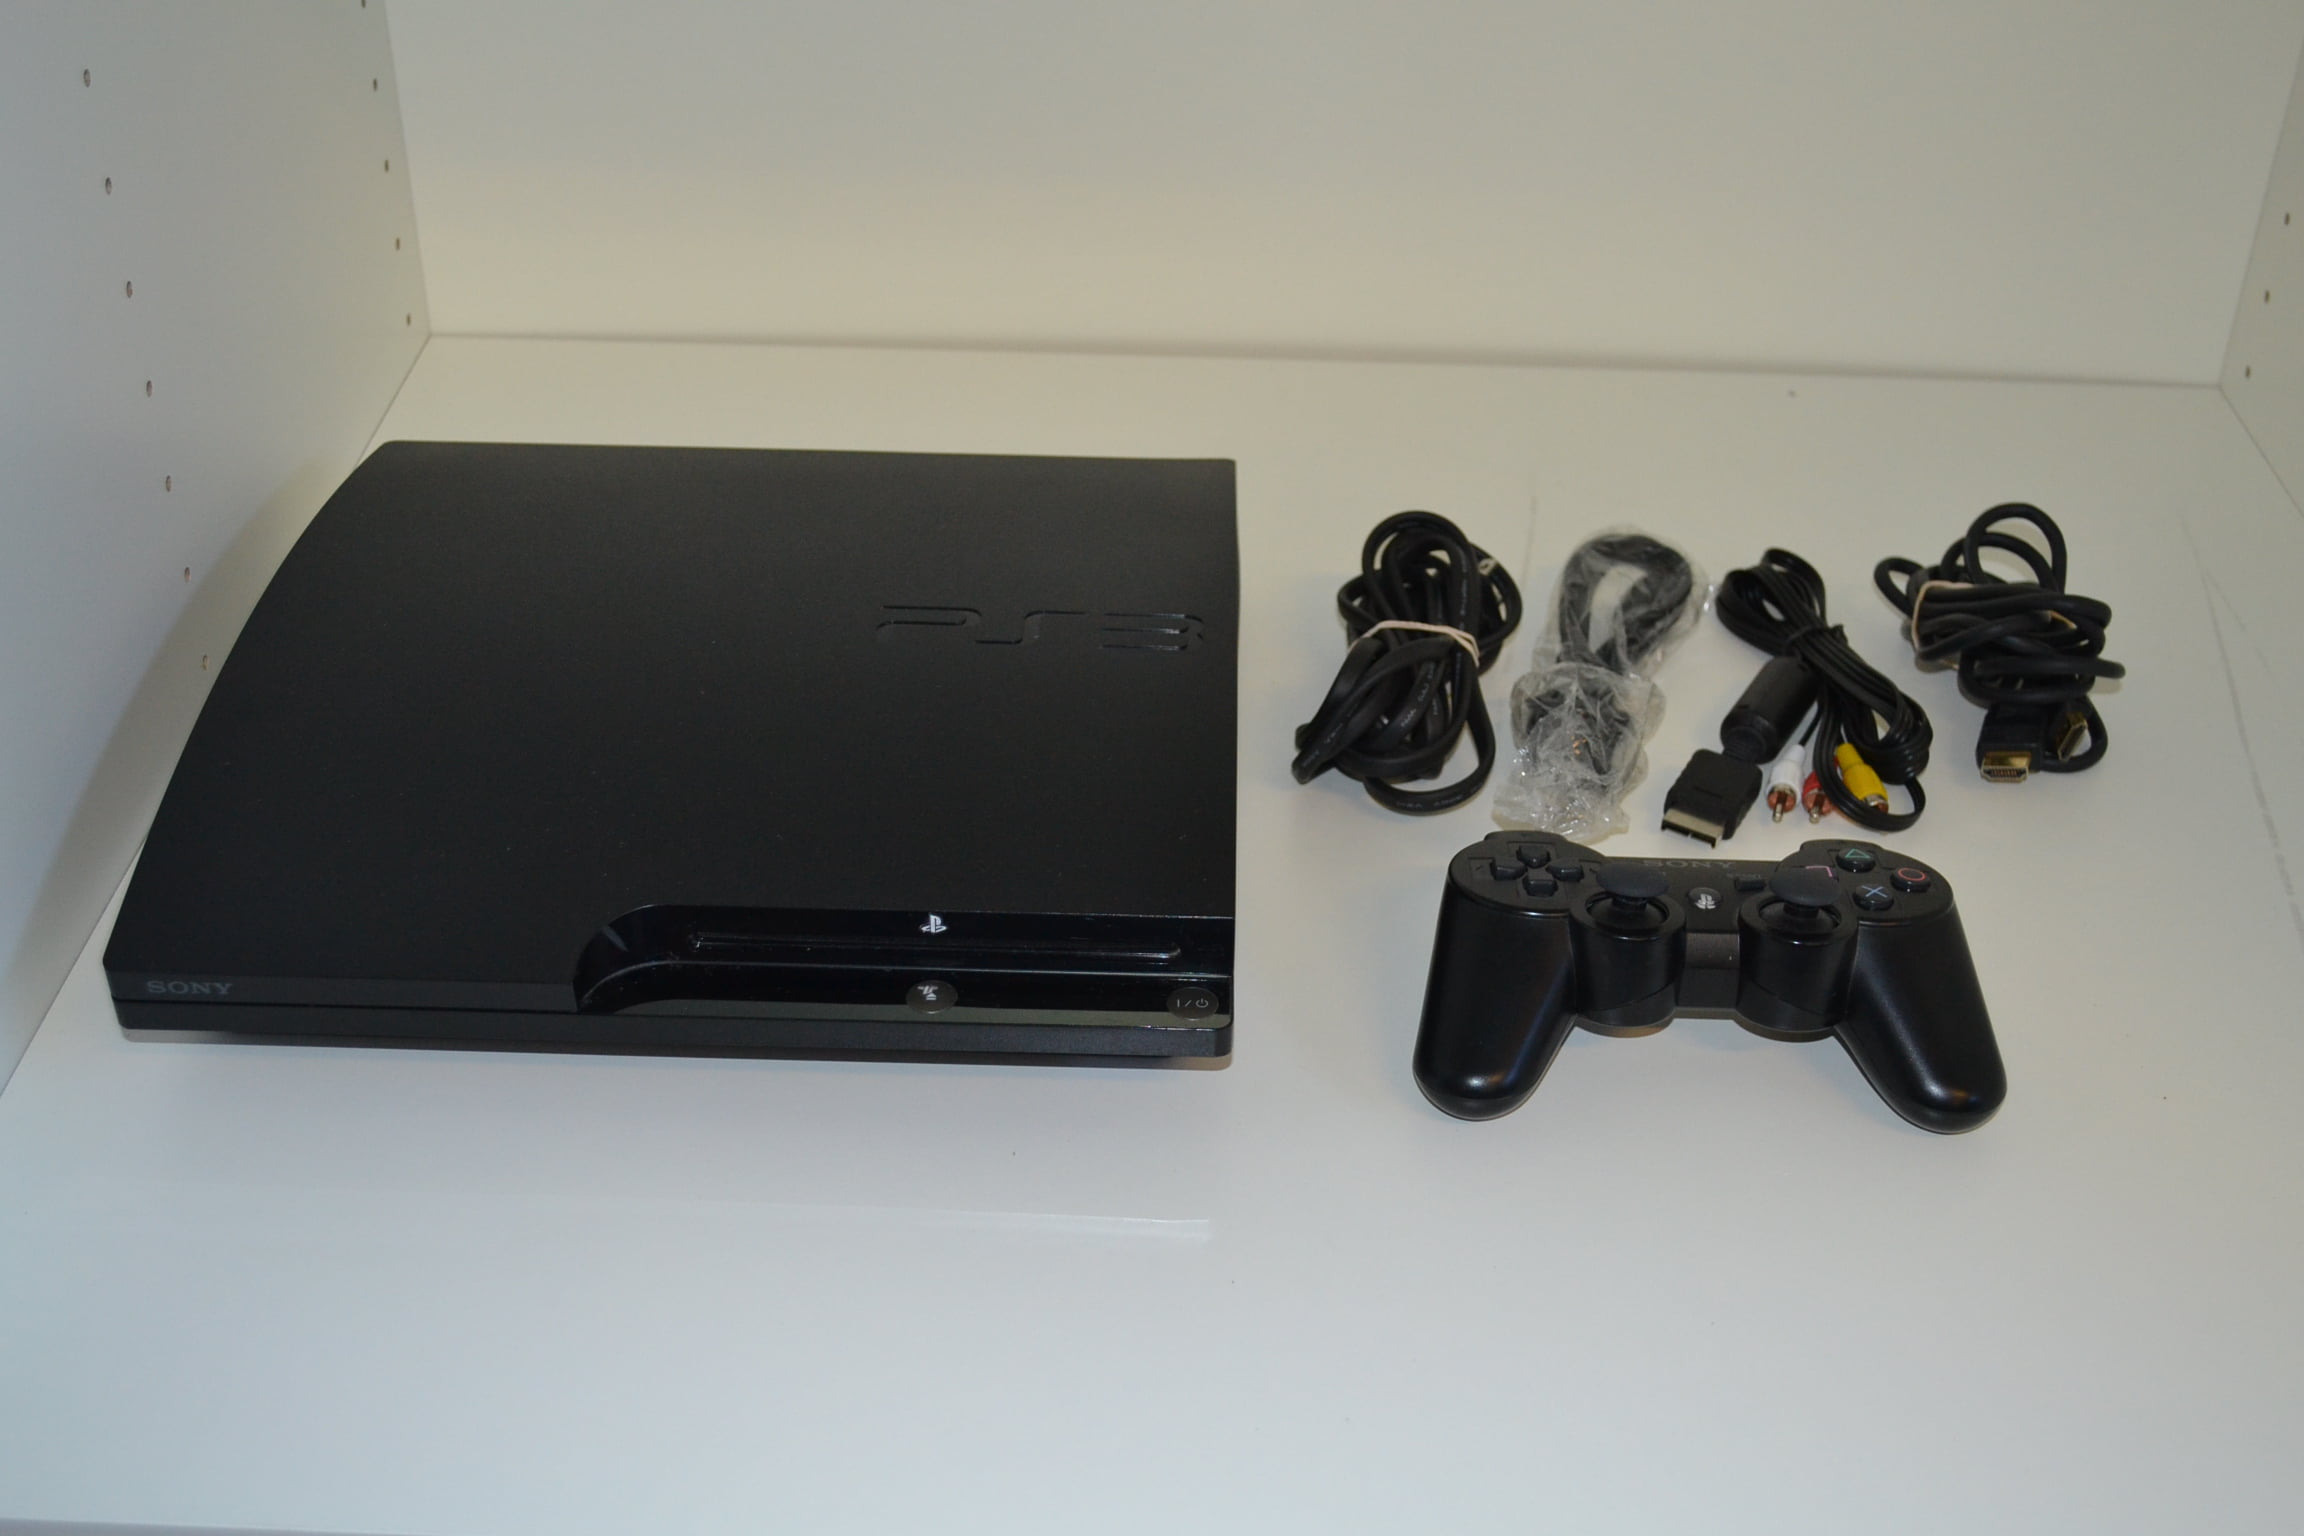 Refurbished Sony PlayStation 3 Slim 120GB Gaming Console Video Game Systems by Sony